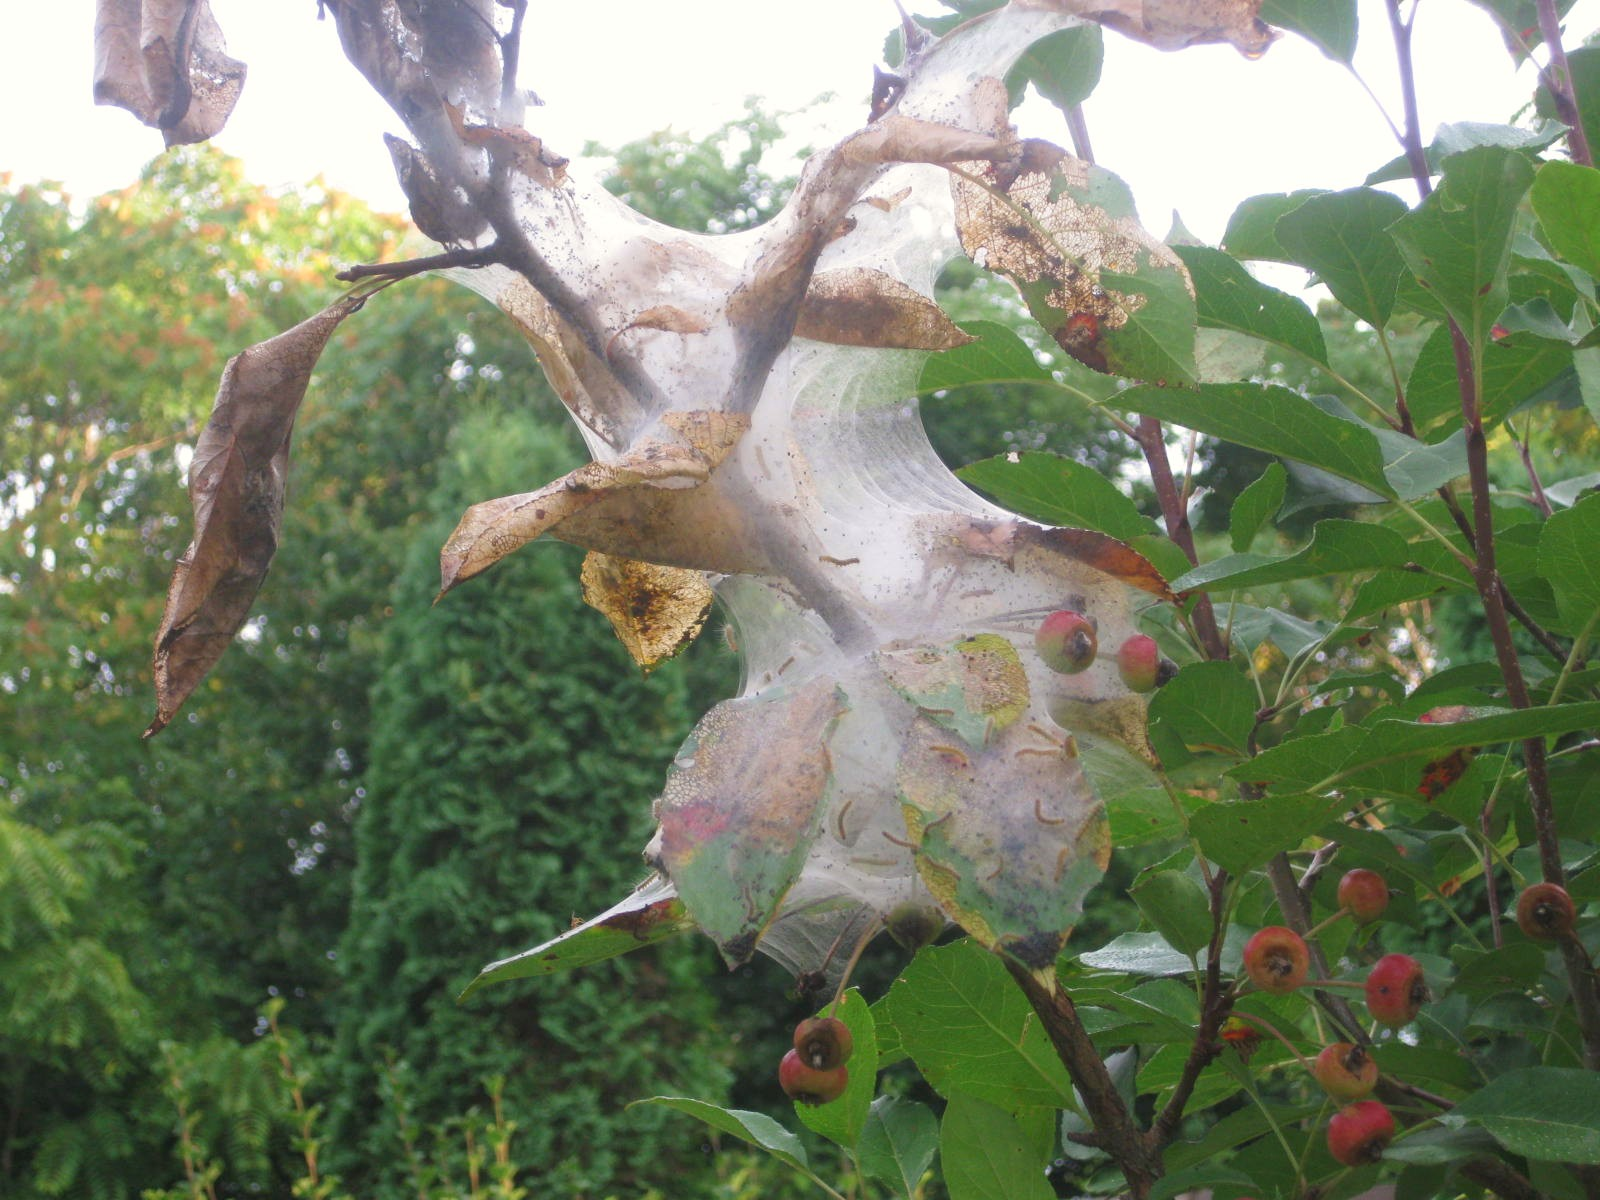 The Fall Webworm